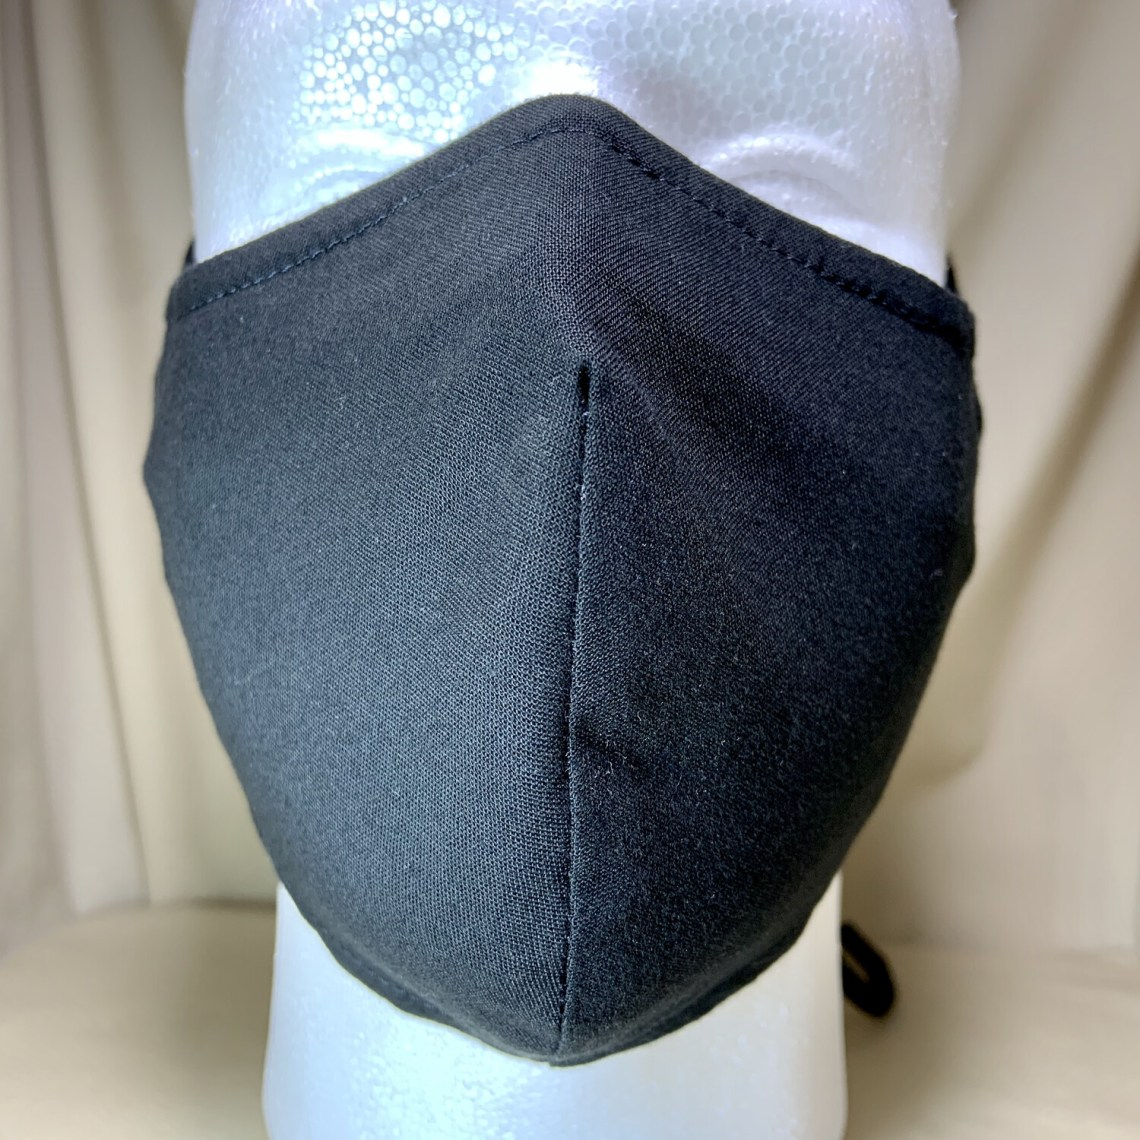 Black Face Covering - Large - Non-Medical